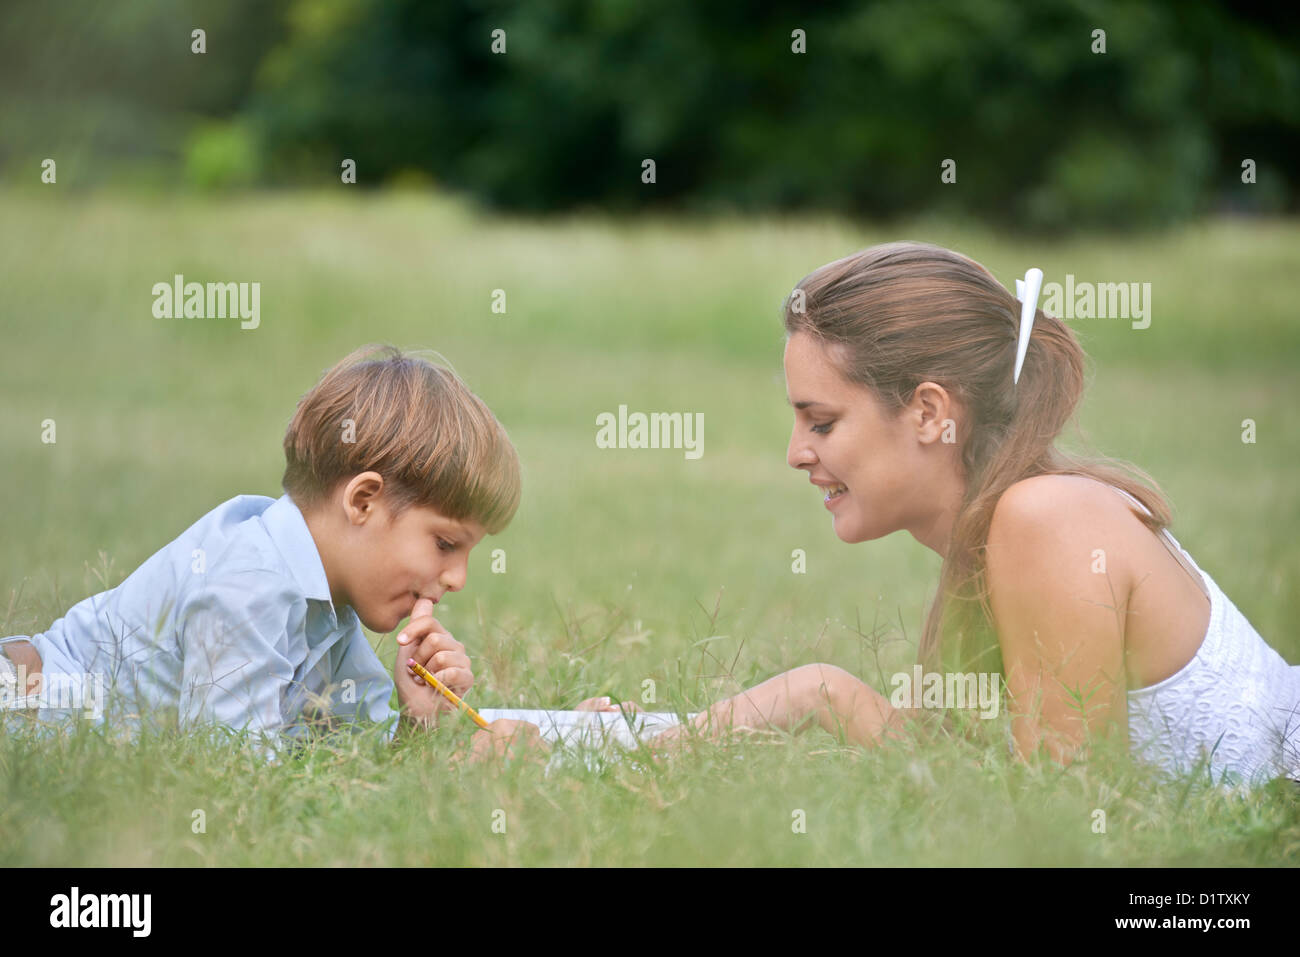 People and education, mother helping child with homework, lying on grass and reading book at park. Medium shot - Stock Image